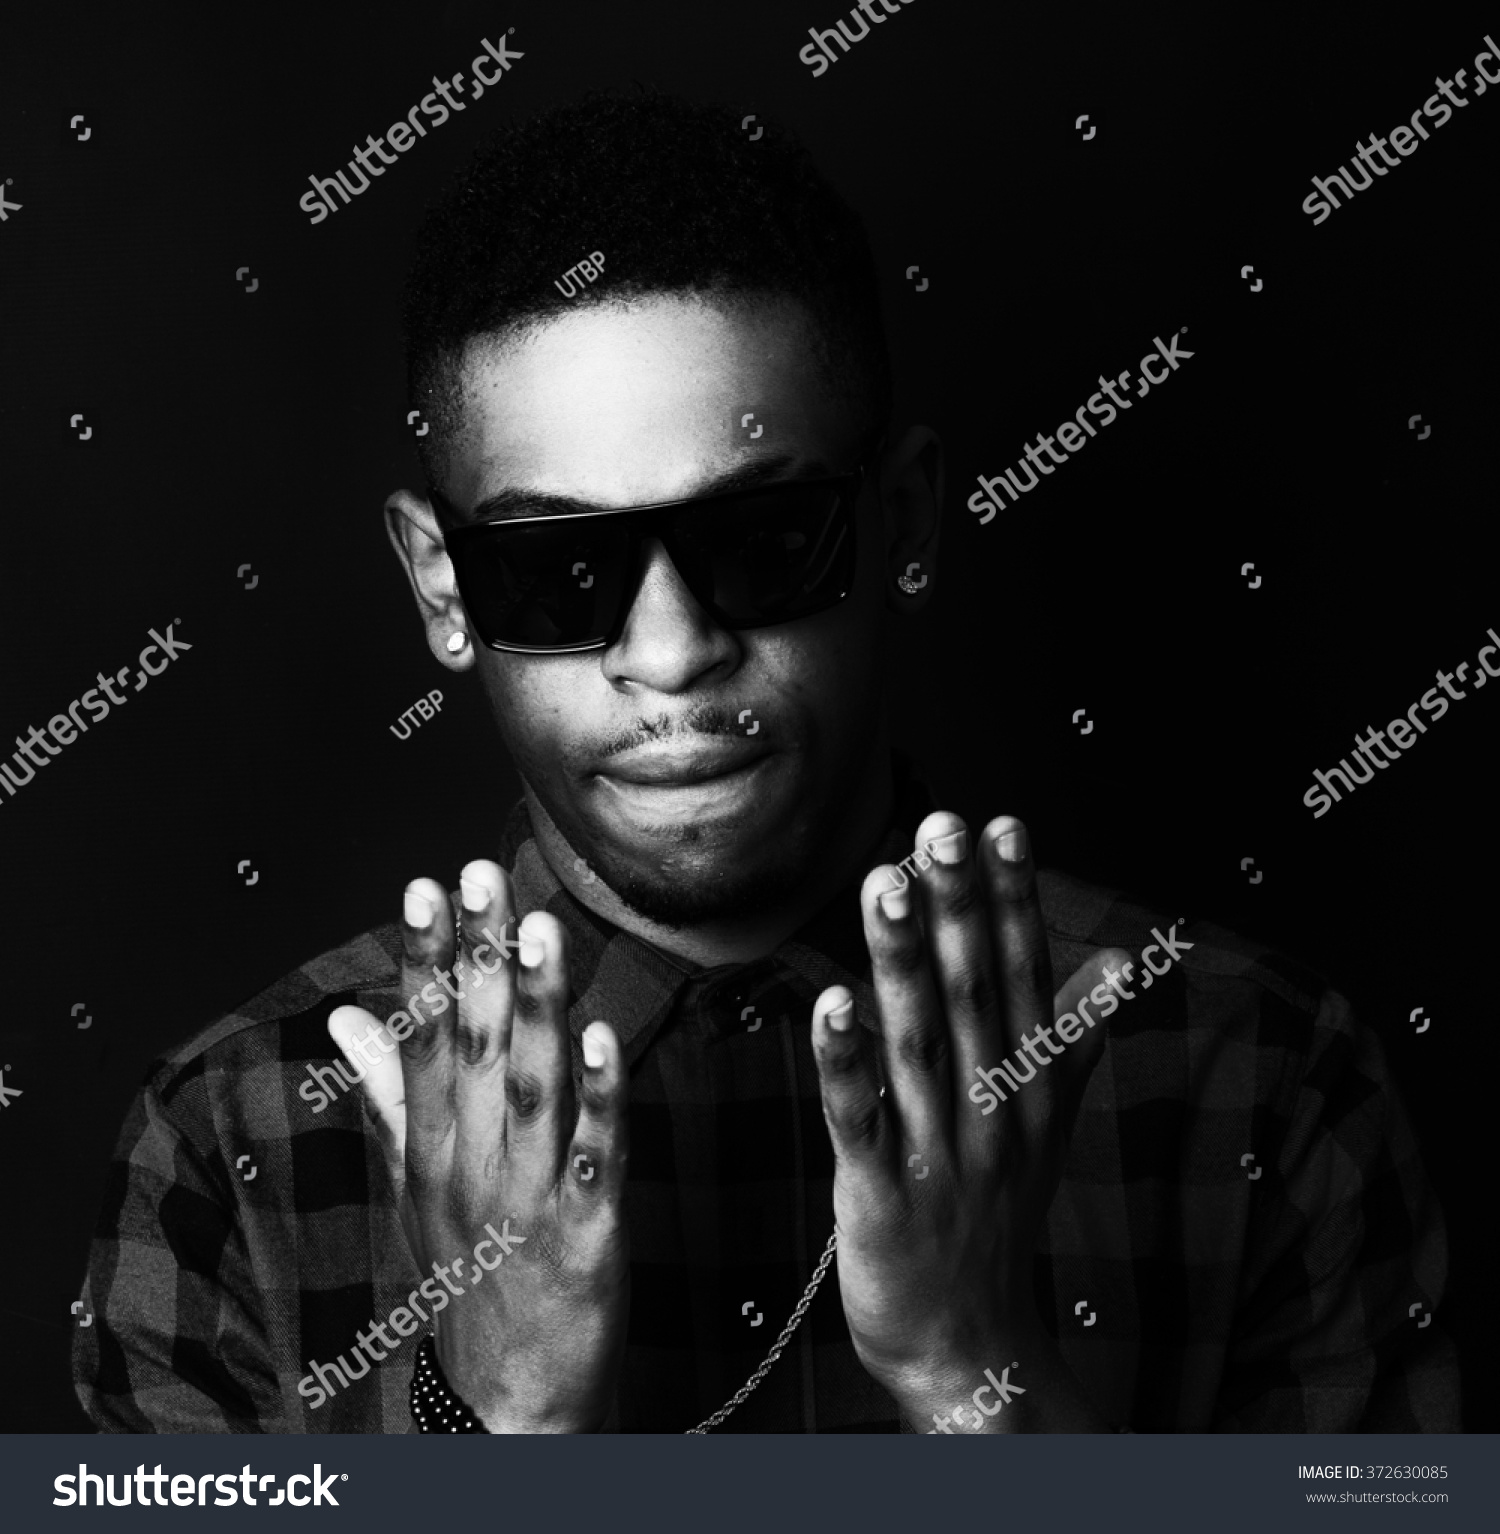 Black and white high contrast african american male man portrait black man with sun glasses